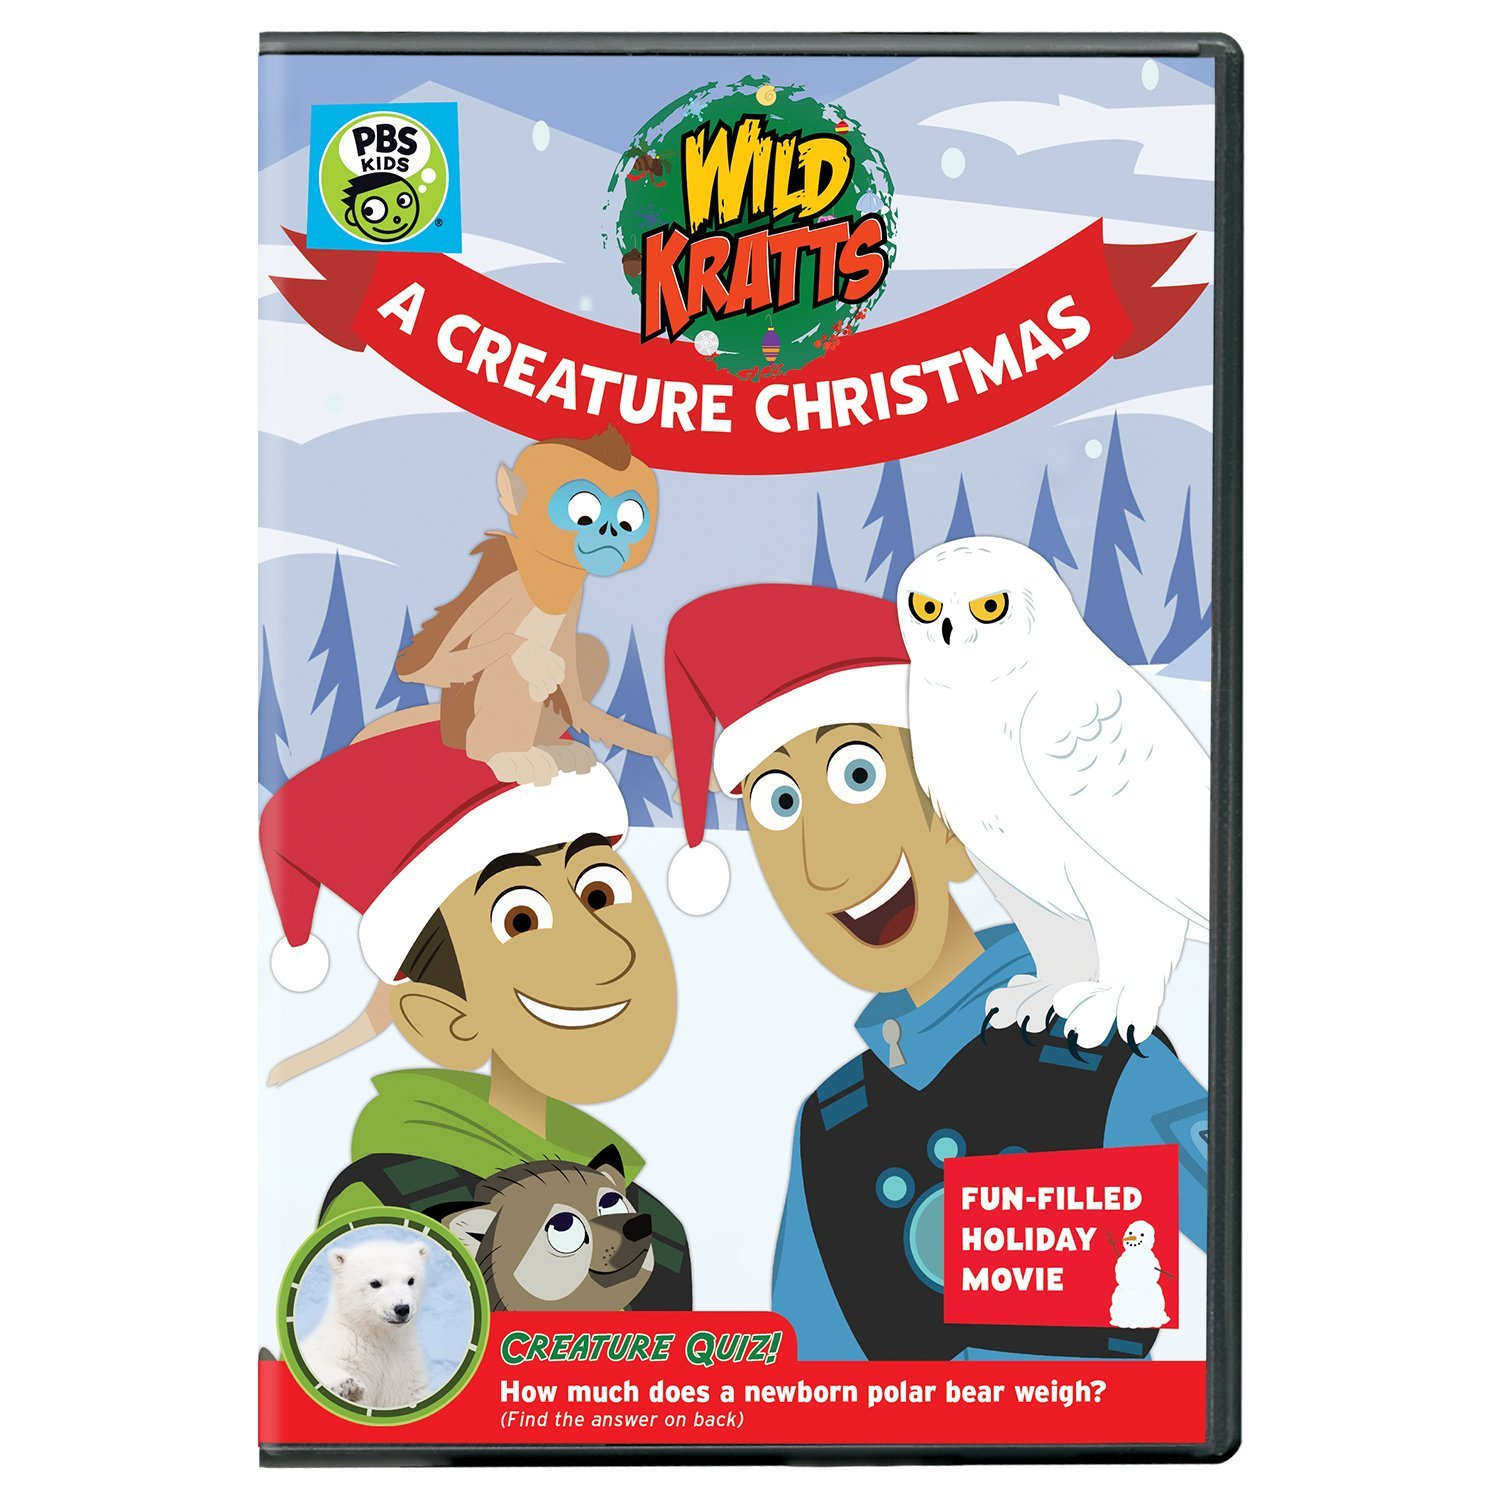 Wild Kratts: A Creature Christmas on DVD